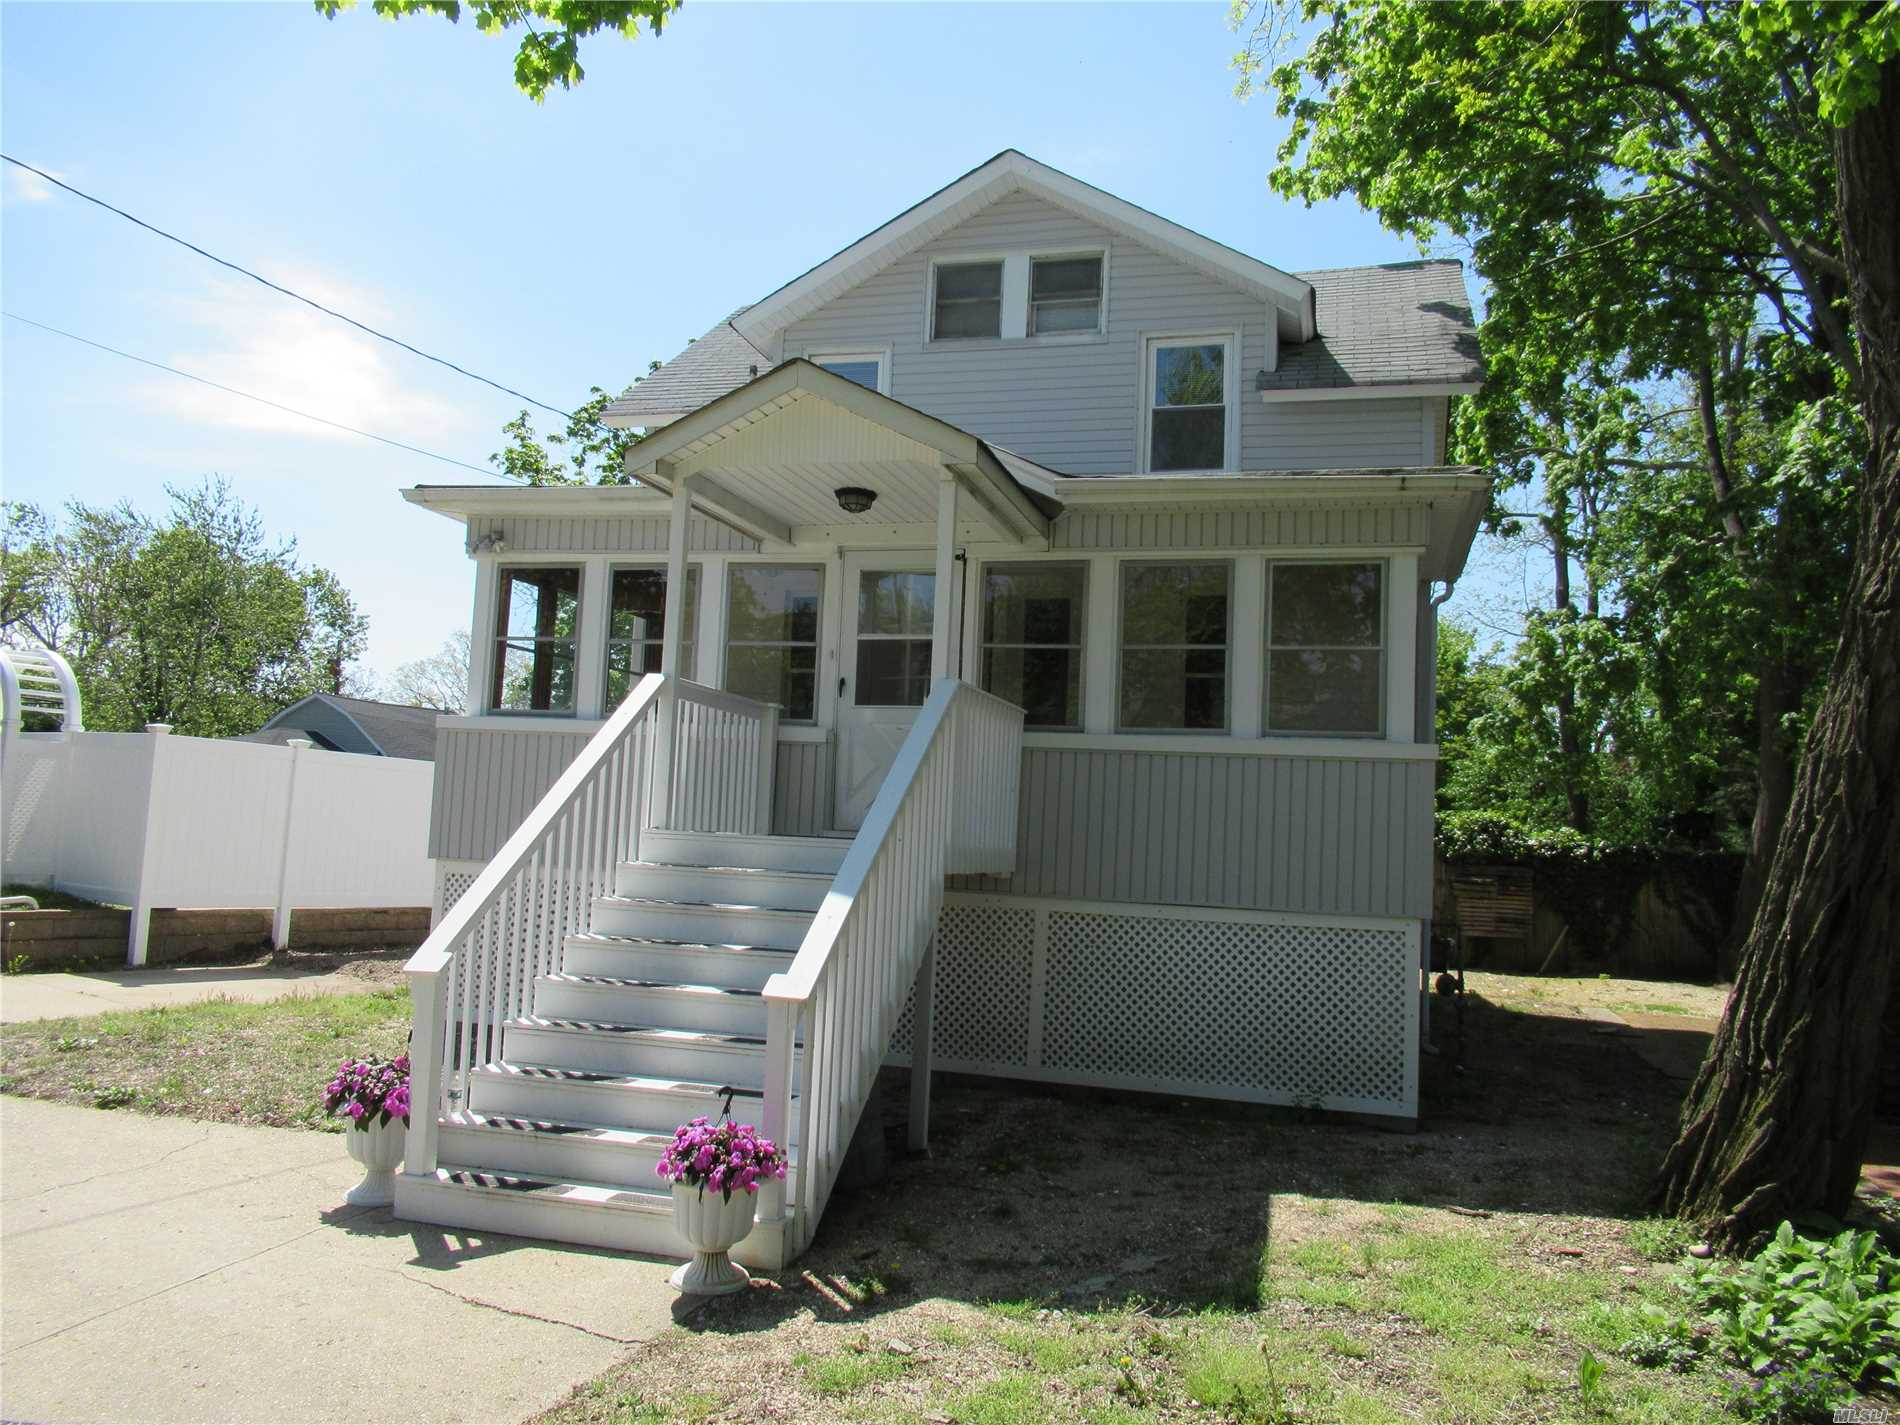 House Has Been Raised 7 Feet Via New York Rising, With Completely New Full Basement , Updated Siding. Windows And Utilities Up To Code , Enclosed Front Porch 10' X 20 ' ,  An Adorable Cottage With Many Possibilities. Locust Valley School District.